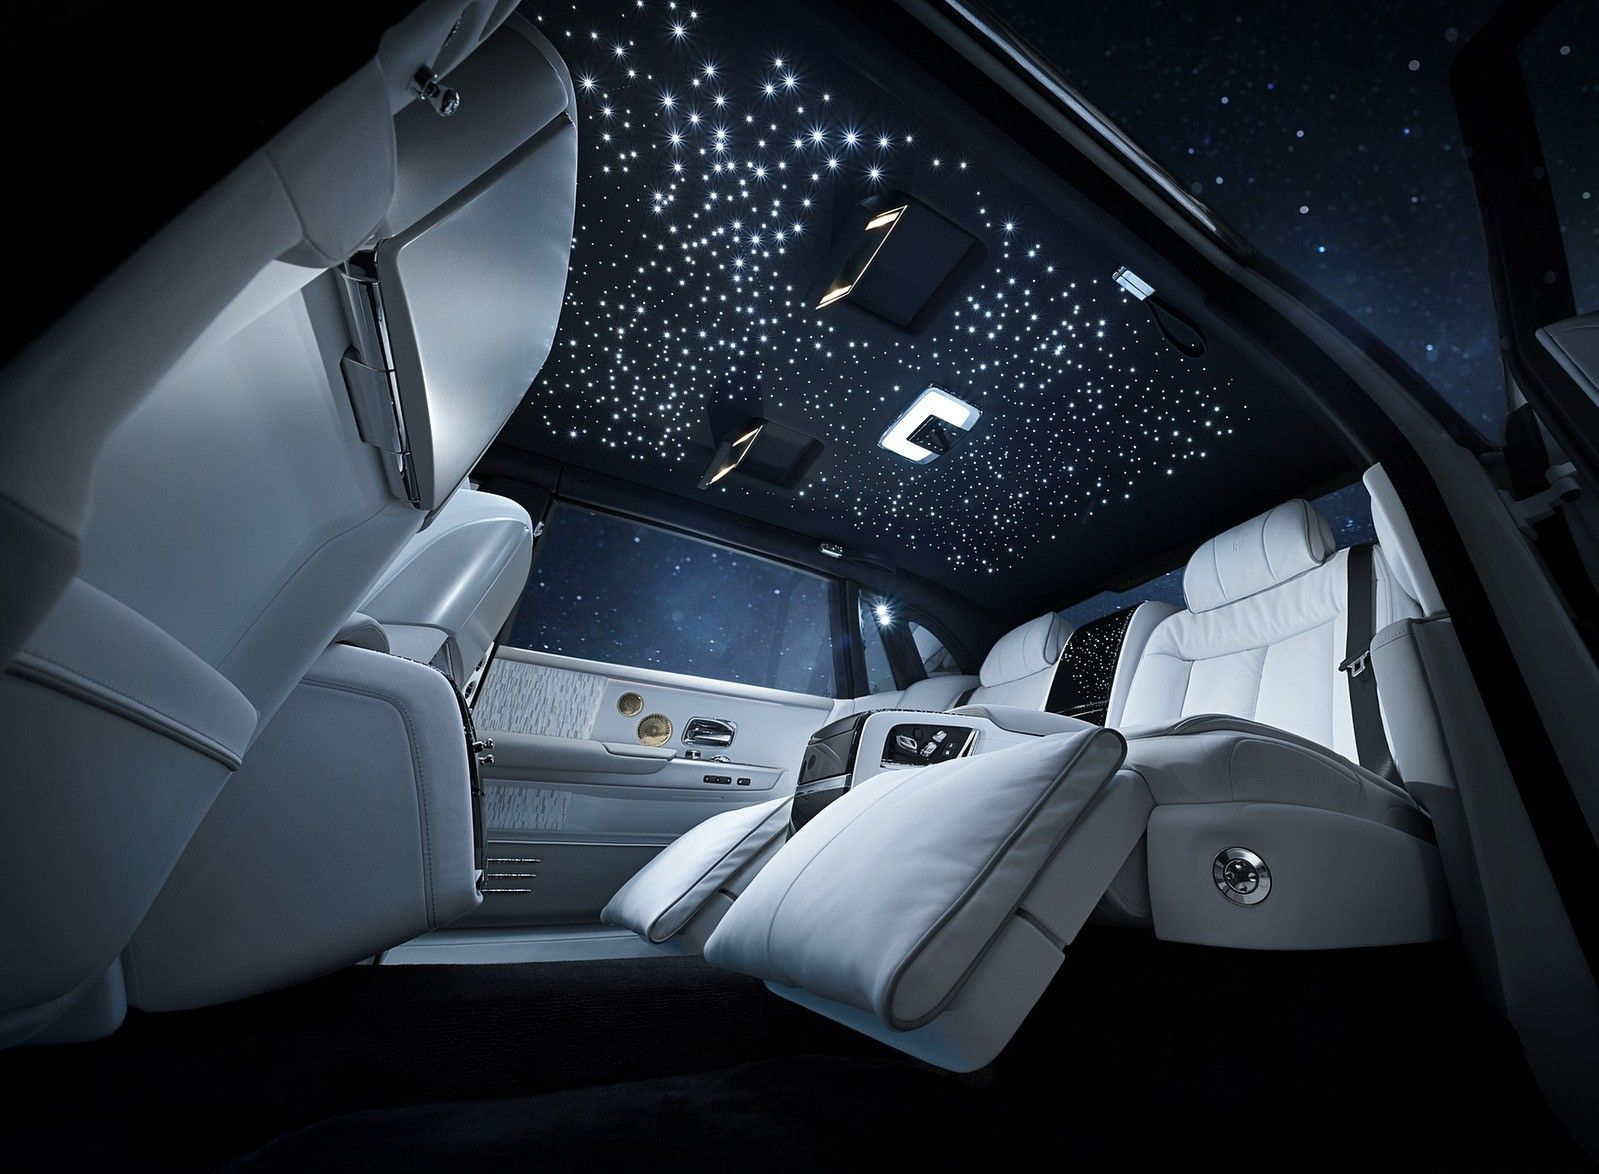 2020 Rolls Royce Phantom Starry Headliner